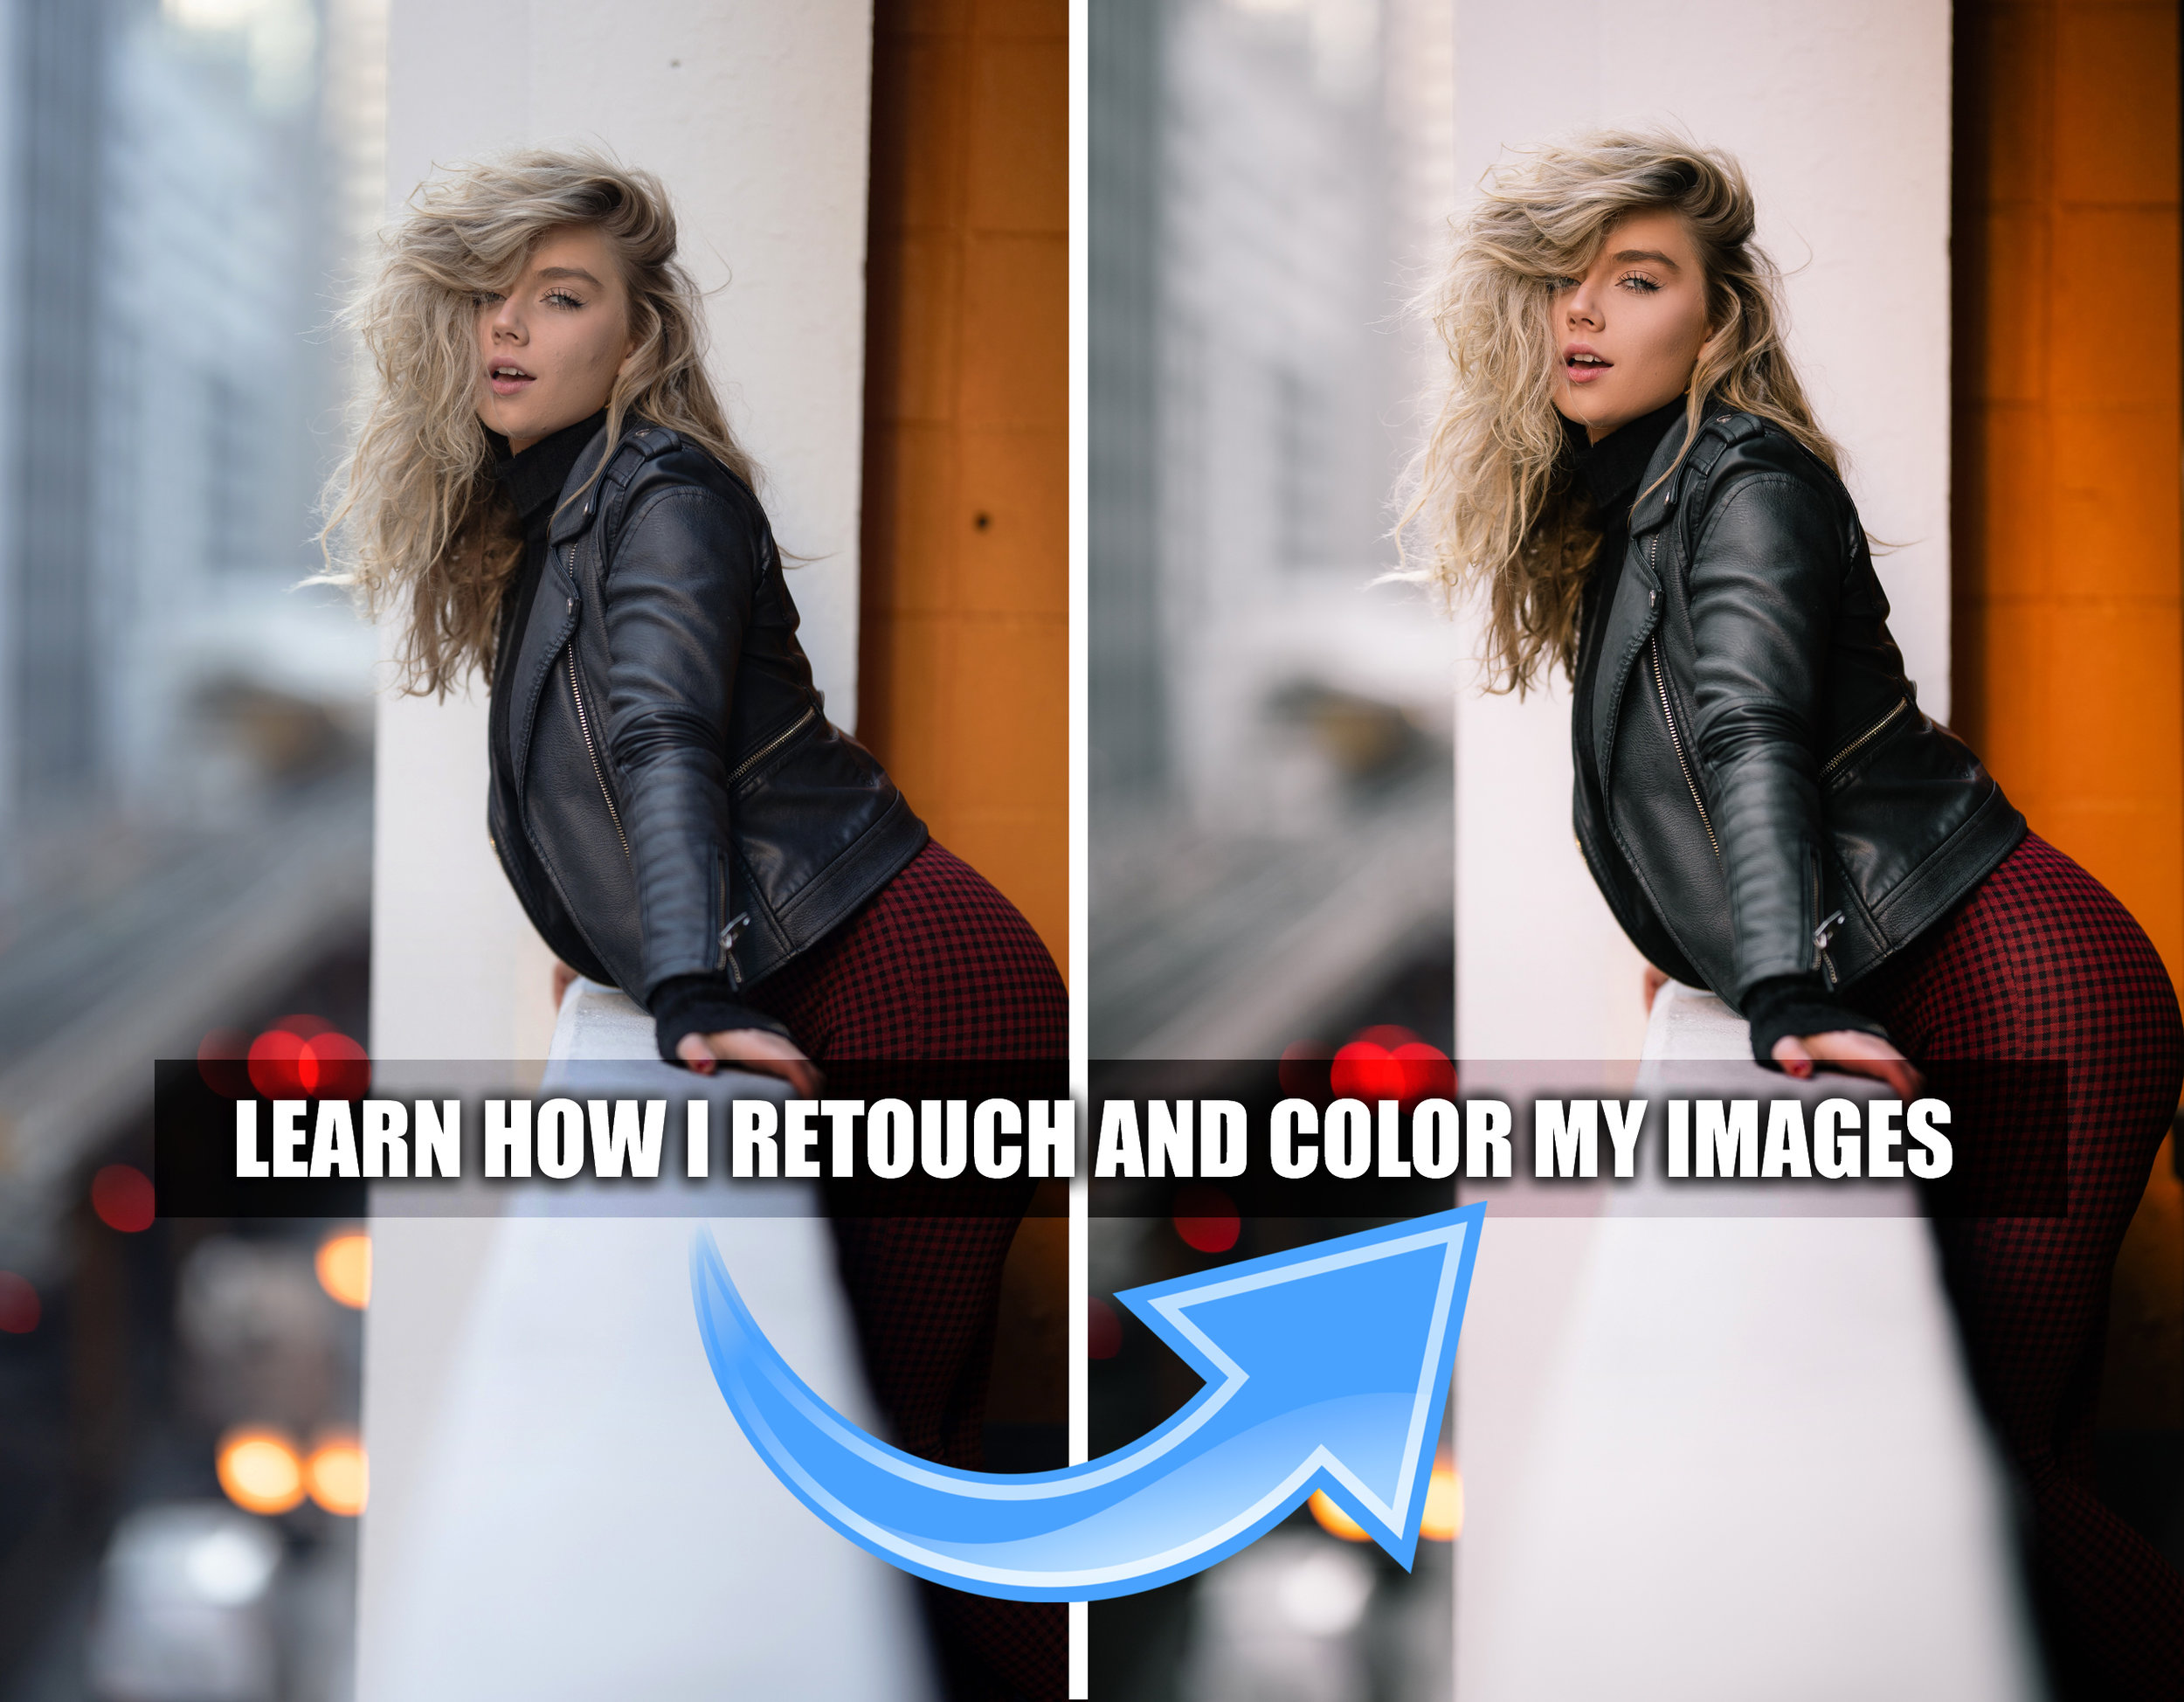 My personal technique to skin retouching using Frequency Separation! - Smoothen skin like a PRO! I will provide a FREE Frequency Separation Photoshop action!